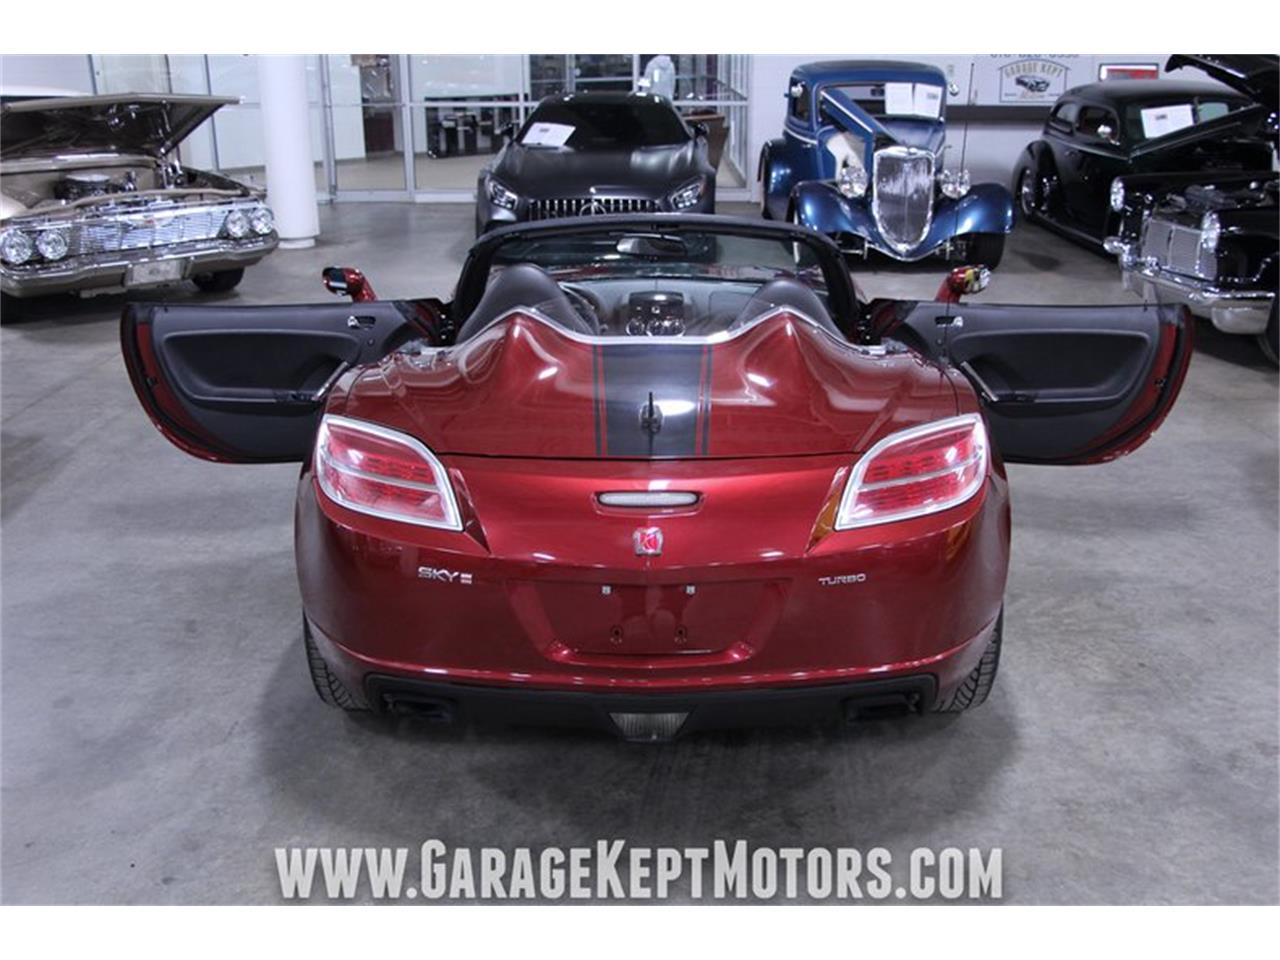 2009 Saturn Sky for sale in Grand Rapids, MI – photo 46